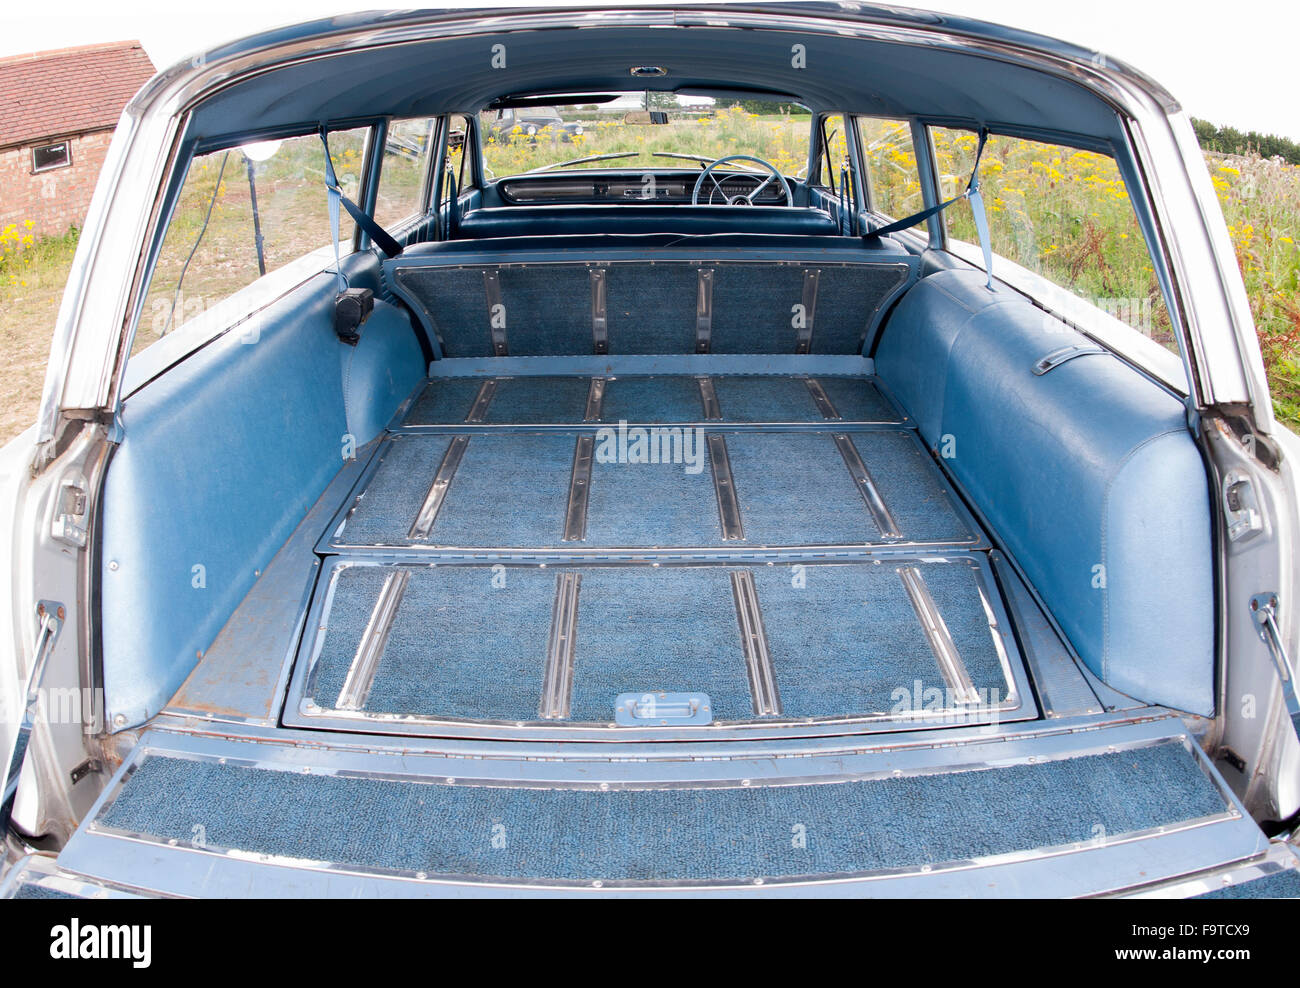 1964 pontiac parisienne american station wagon estate car with the stock photo royalty free. Black Bedroom Furniture Sets. Home Design Ideas